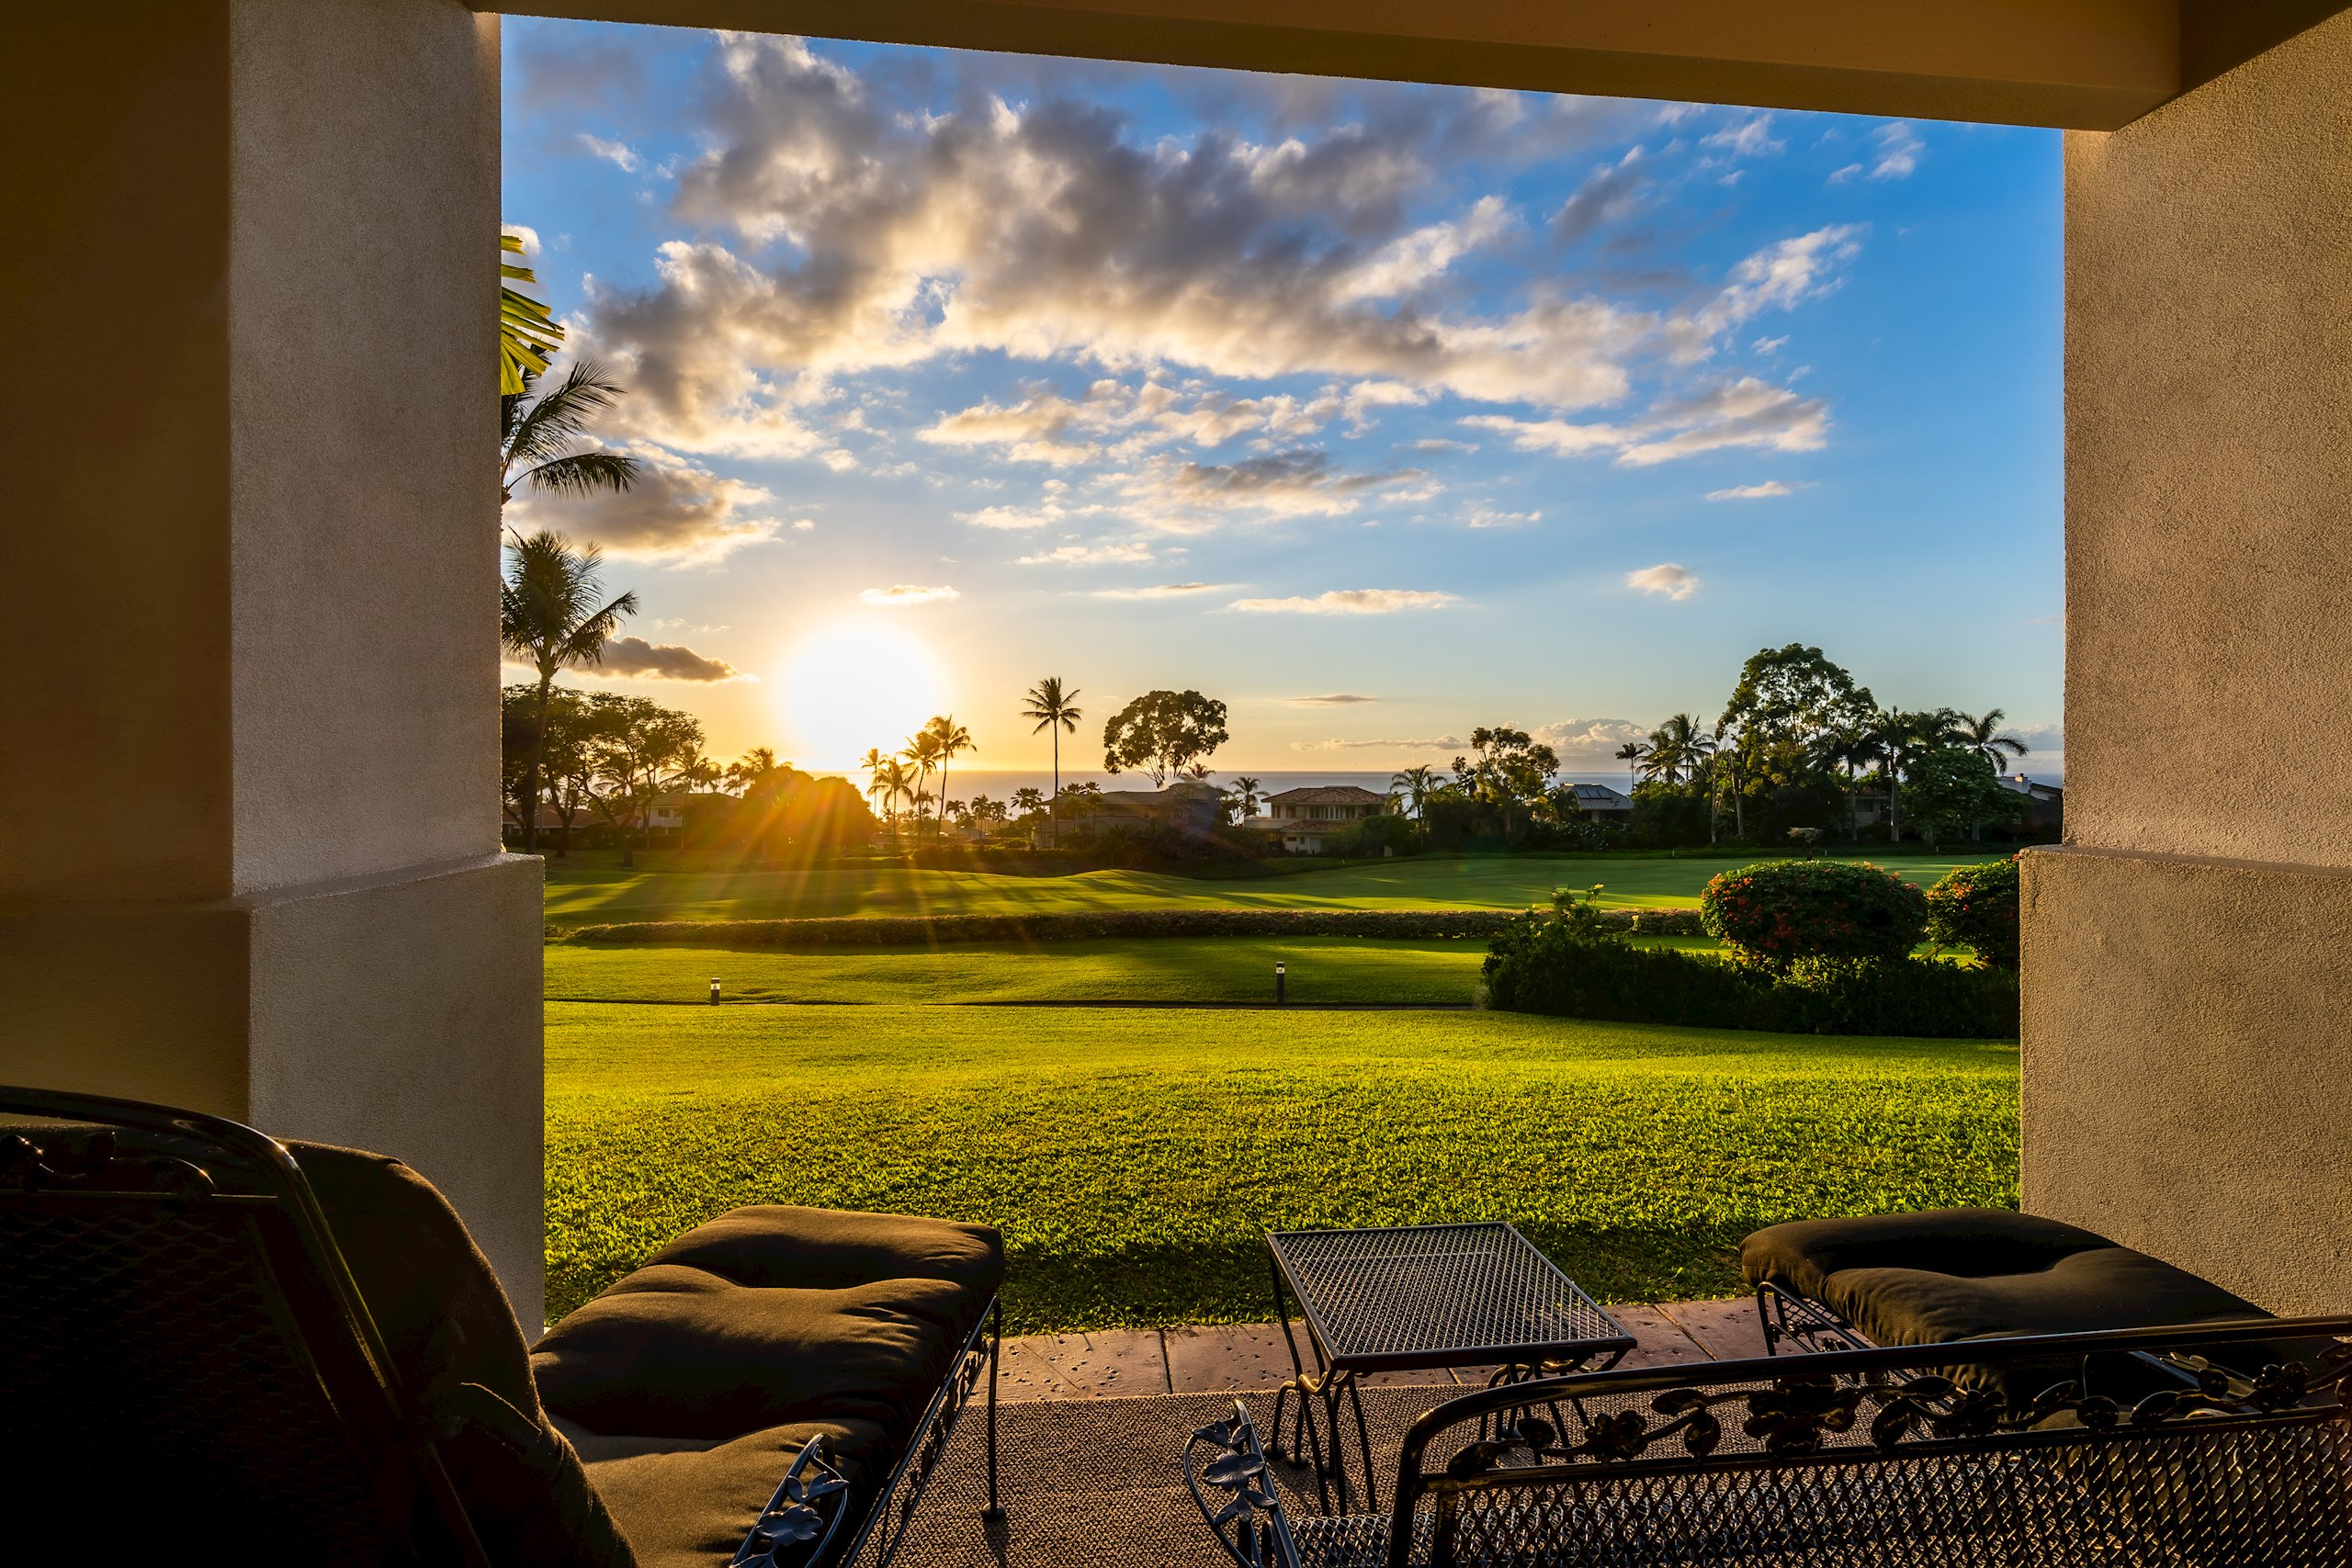 This is one of the best locations at Wailea Fairway Villas with fabulous, panoramic ocean views from Kahoolawe to Maalaea and stunning, year-round sunsets. Overlooking the 11th Fairway of the Wailea Blue Course, the unit offers a private, peaceful and tropical feel. Walk out the lanai and you have nothing but green grass in front of you to enjoy a morning coffee or sunset cocktail. Lay a blanket out on the grass and take in the evening star shows. Inside, the property has been extremely well maintained and lightly used. In 2018, a new split AC system was installed in both bedrooms and living area to keep you cool and comfortable year-round. Enjoy the many amenities including the ocean view pool, spa, workout room, and BBQ area. And you are just a few minutes from all of the shopping and dining that Wailea offers. This is truly an amazing property. Call your favorite Realtor today to schedule a showing!